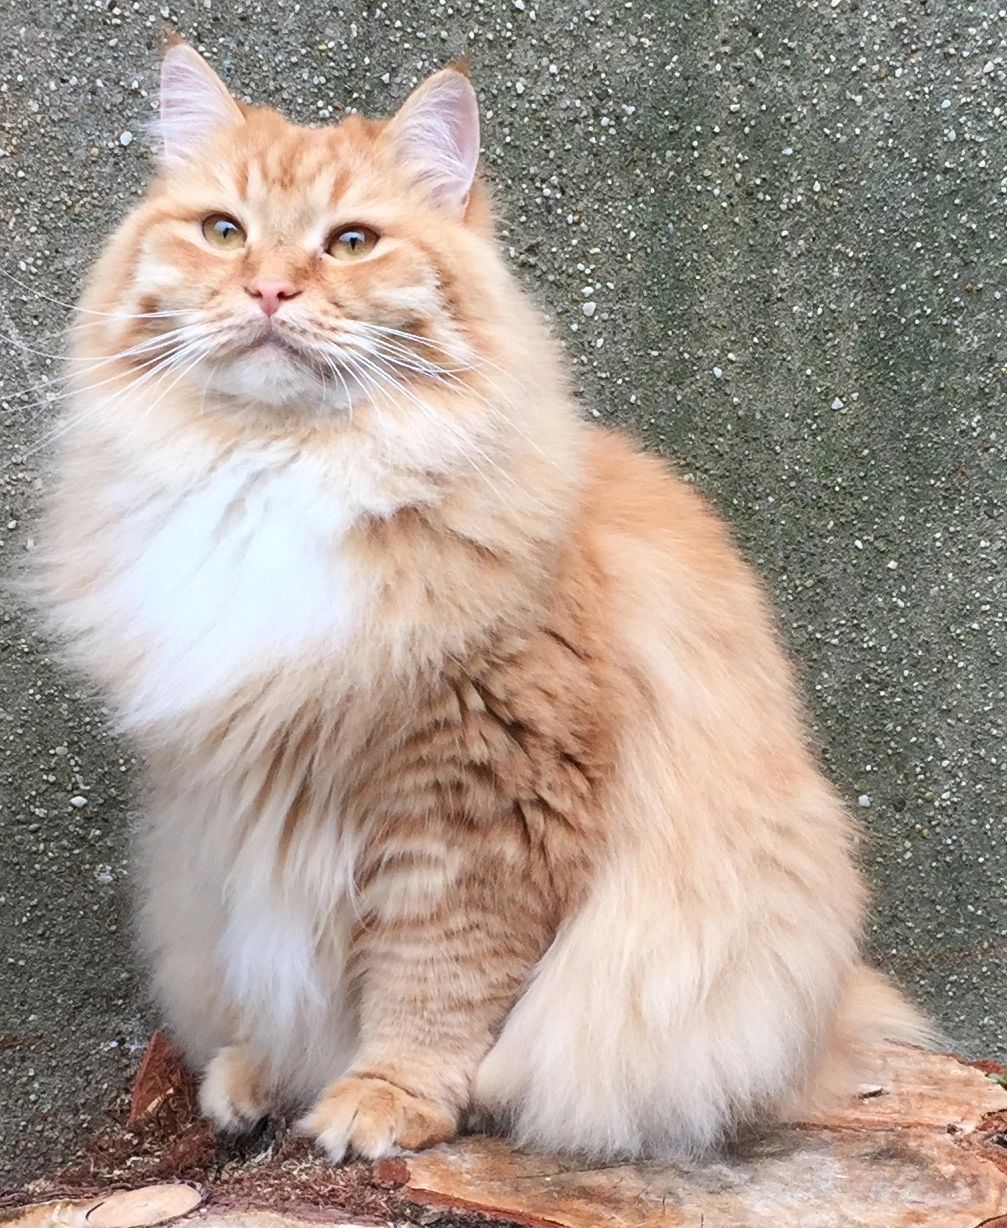 Regal Siberian Cattery In 2020 Siberian Cat Siberian Forest Cat Siberian Kittens